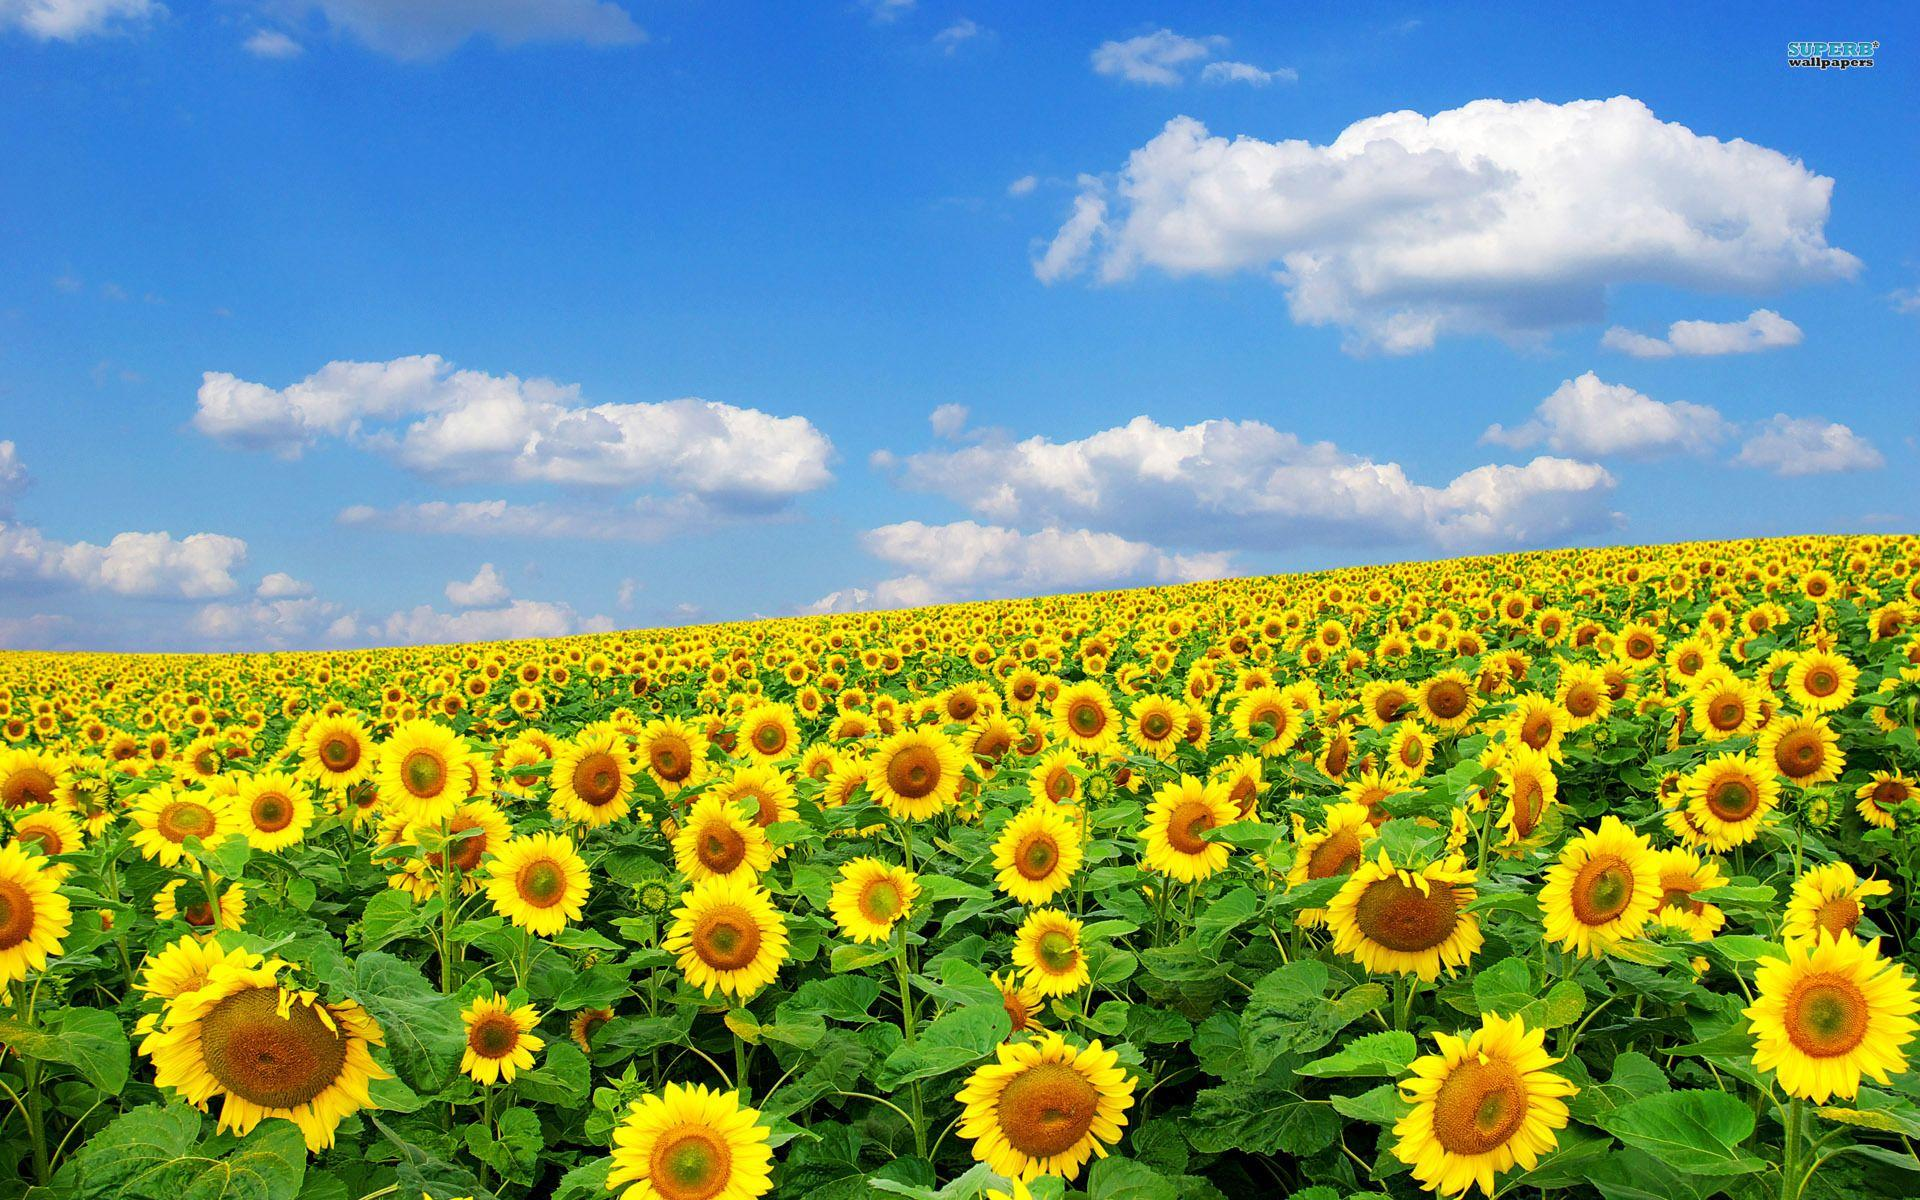 Field Of Sunflowers Wallpapers Wallpaper Cave